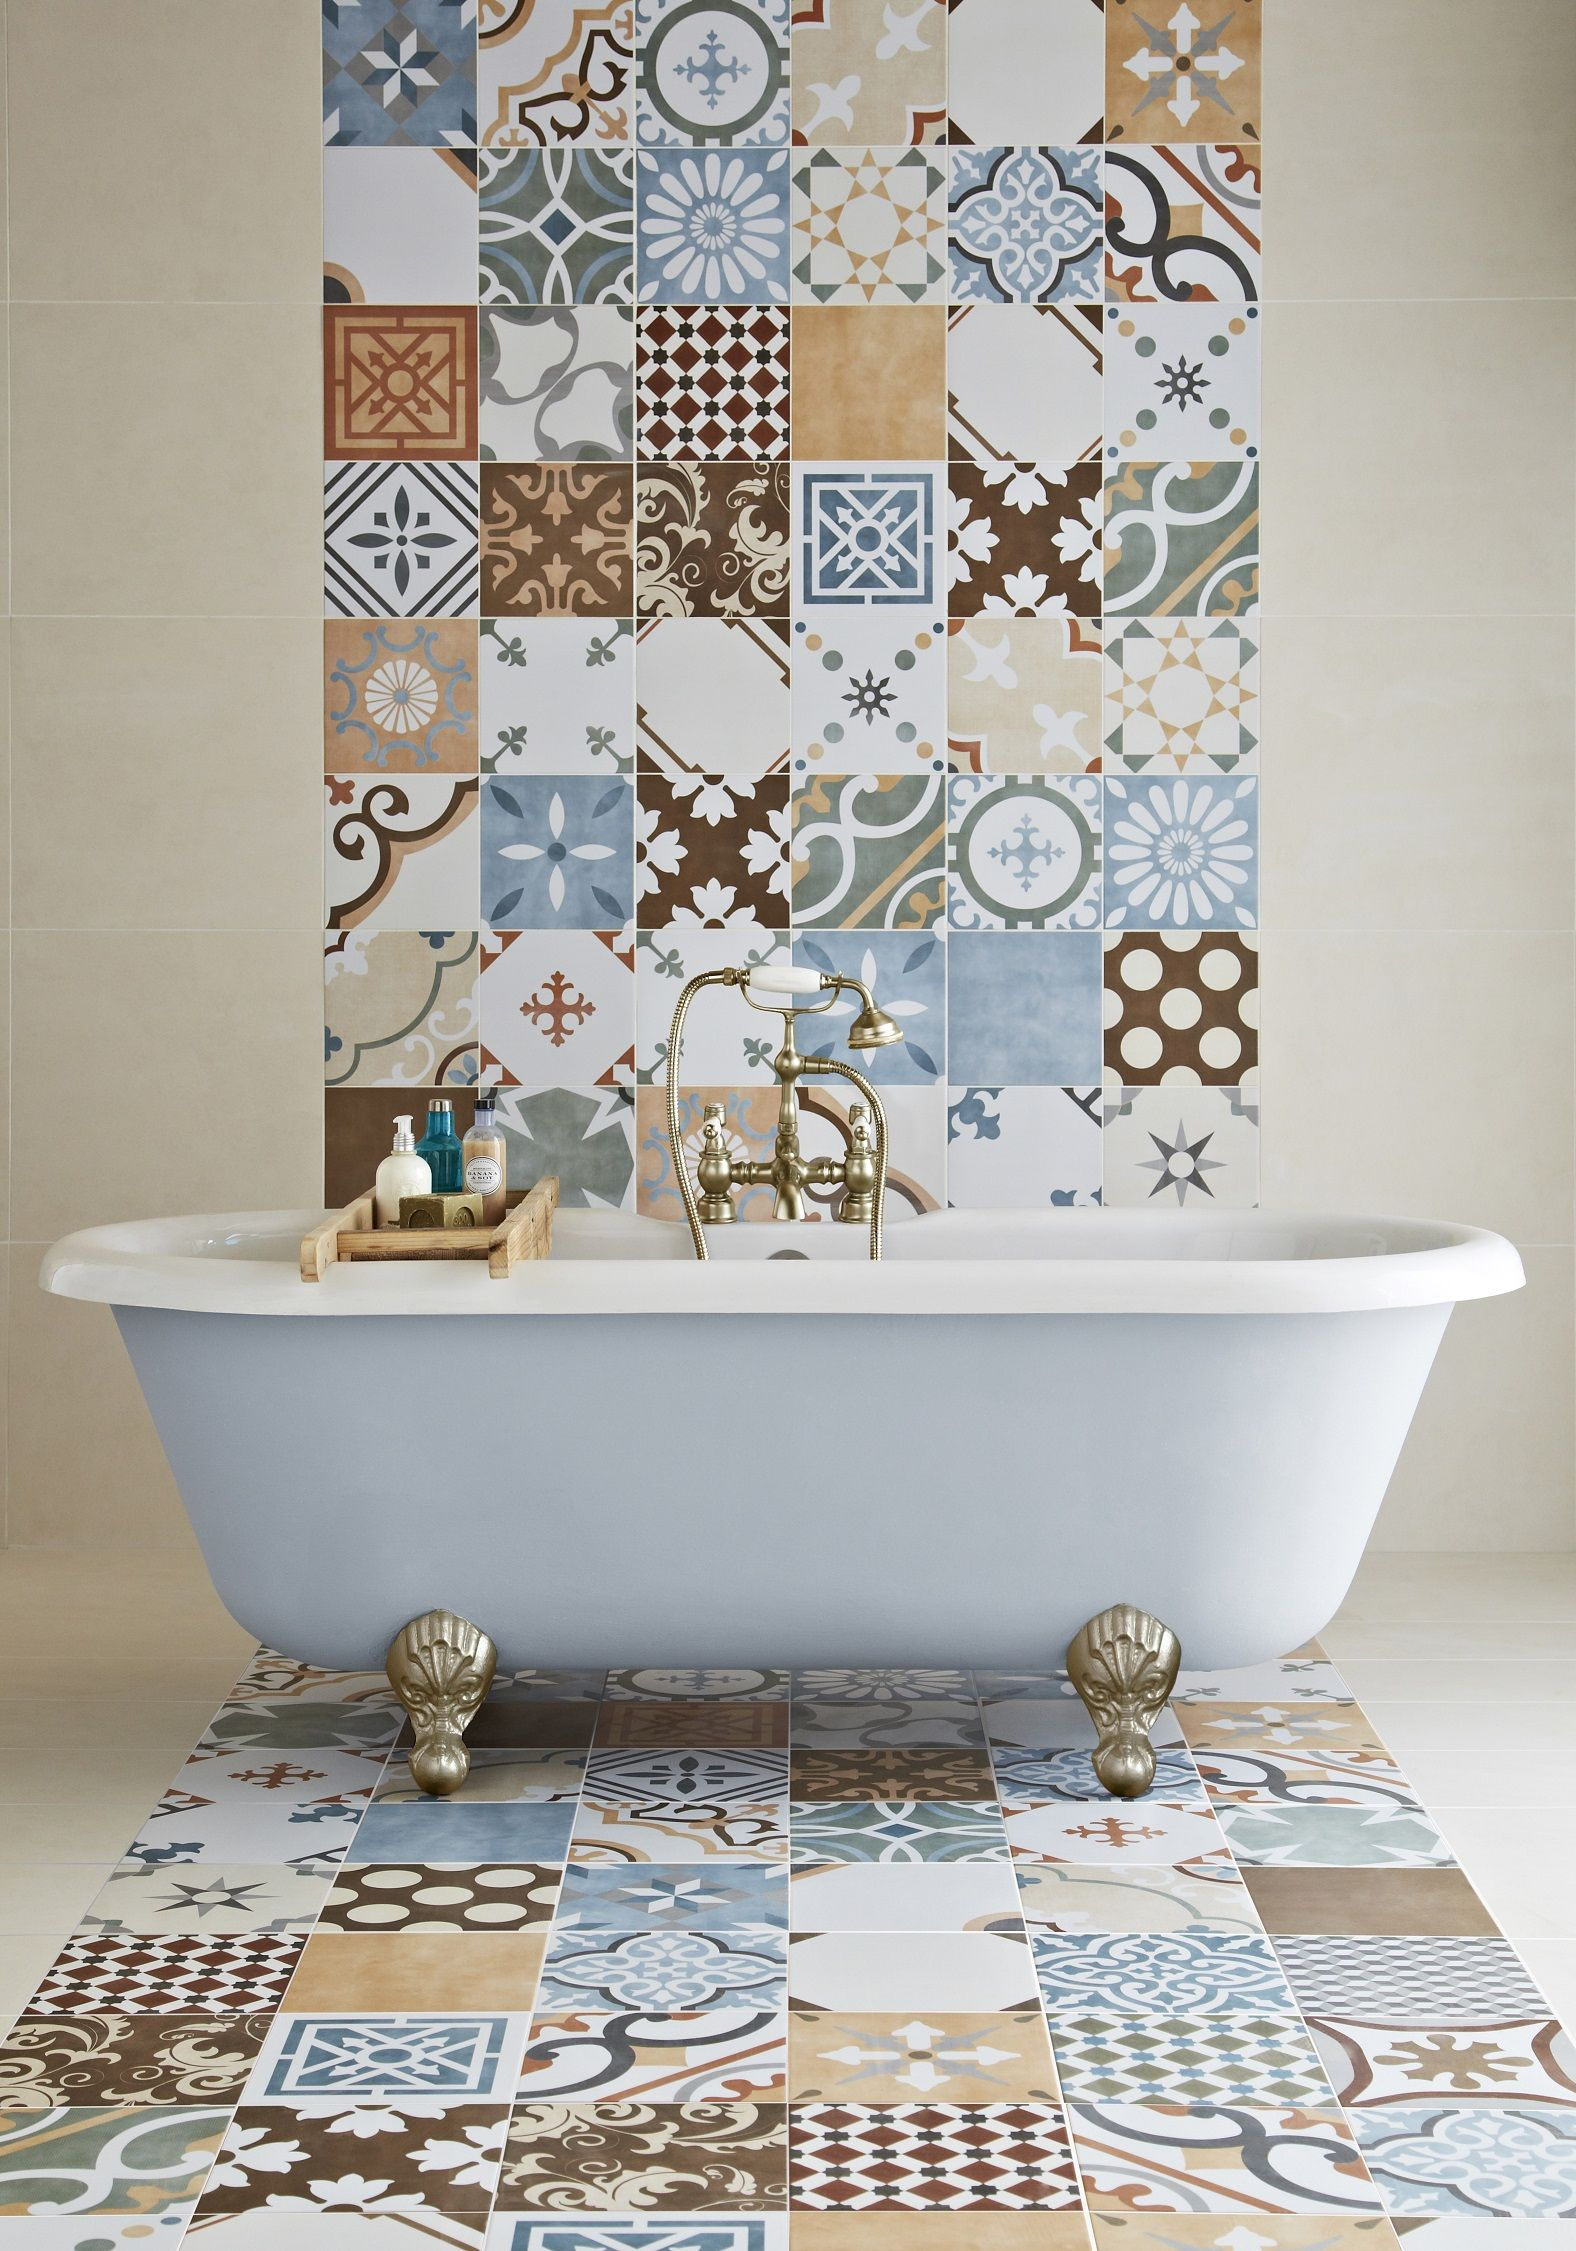 Stamford tile from Topps Tiles - would look amazing on the floor of ...